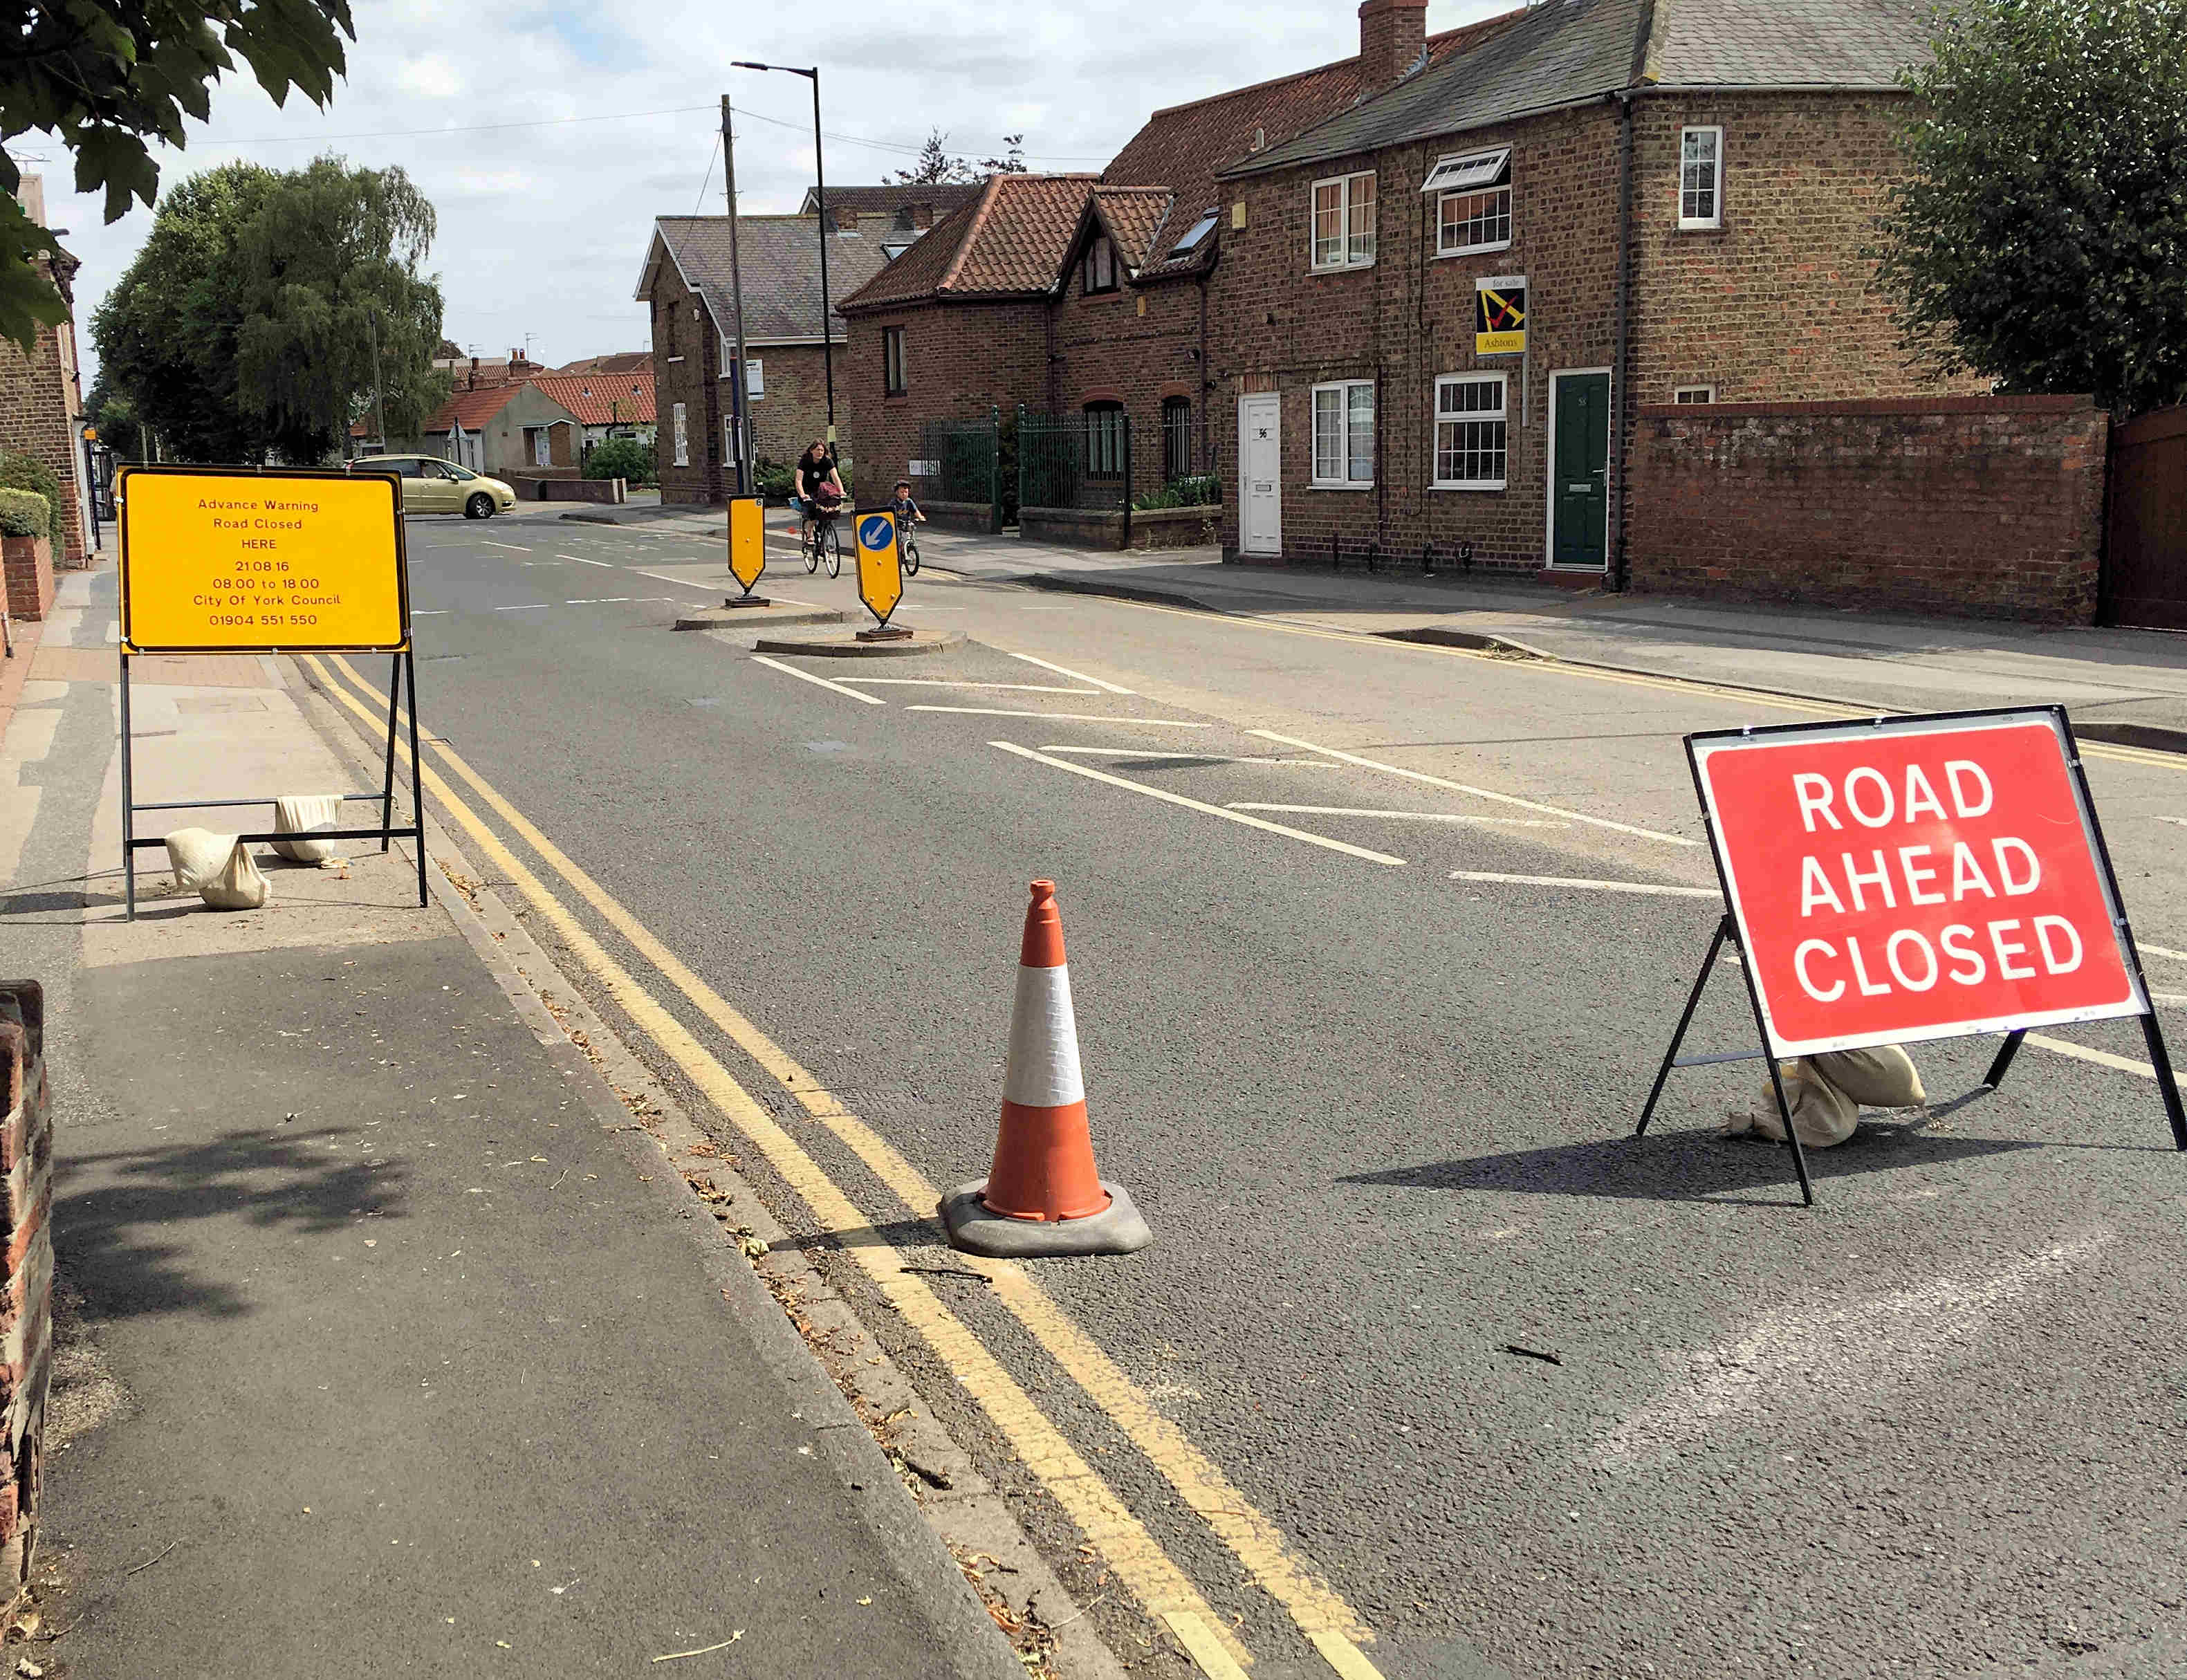 Work started on resurfacing Front Street. The road will be closed again tomorrow (Sunday) to permit the completion of the work